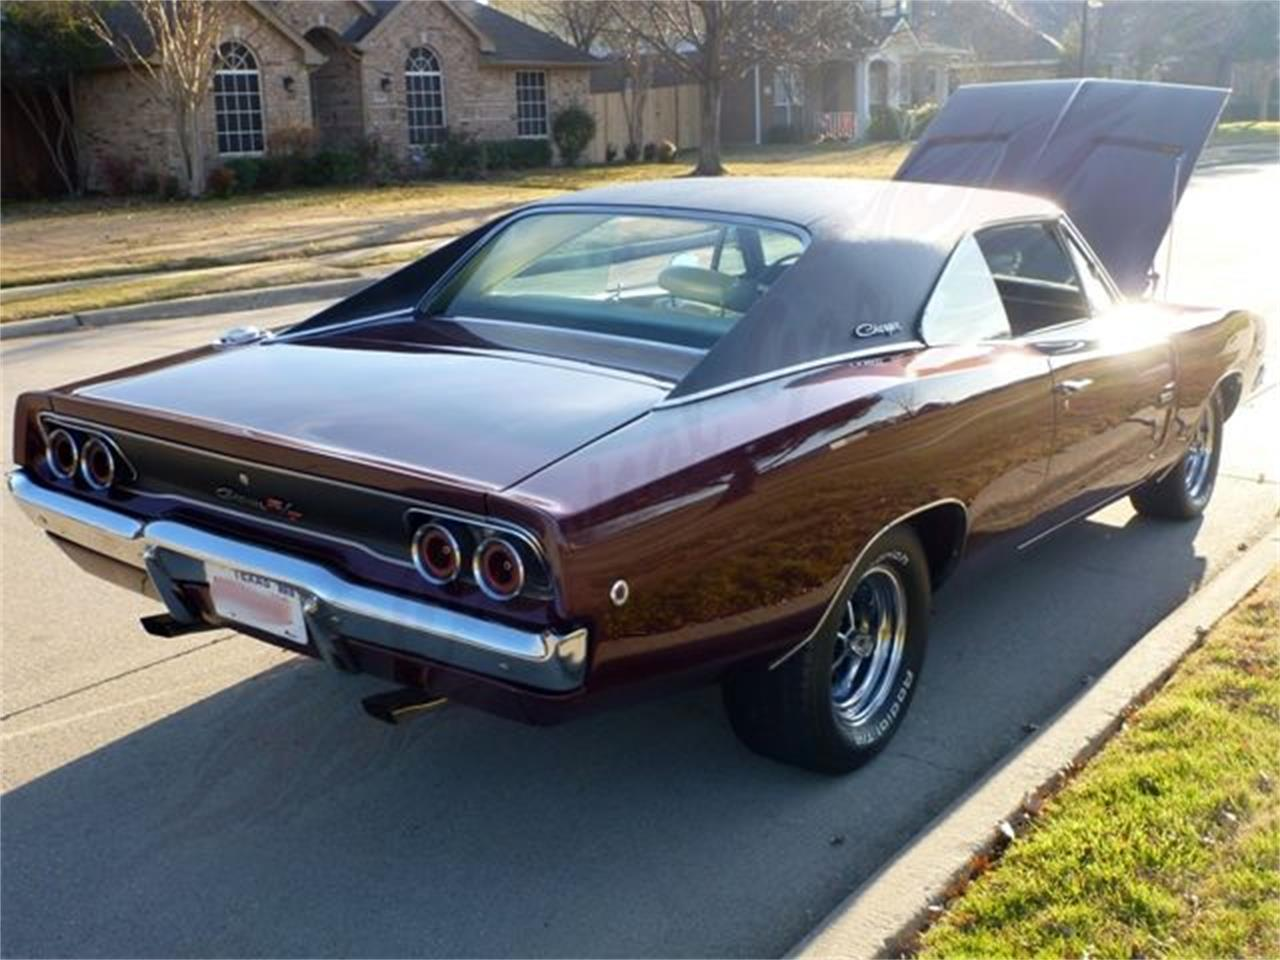 Large Picture of Classic 1968 Charger located in Texas - $149,500.00 Offered by Classical Gas Enterprises - GHCH